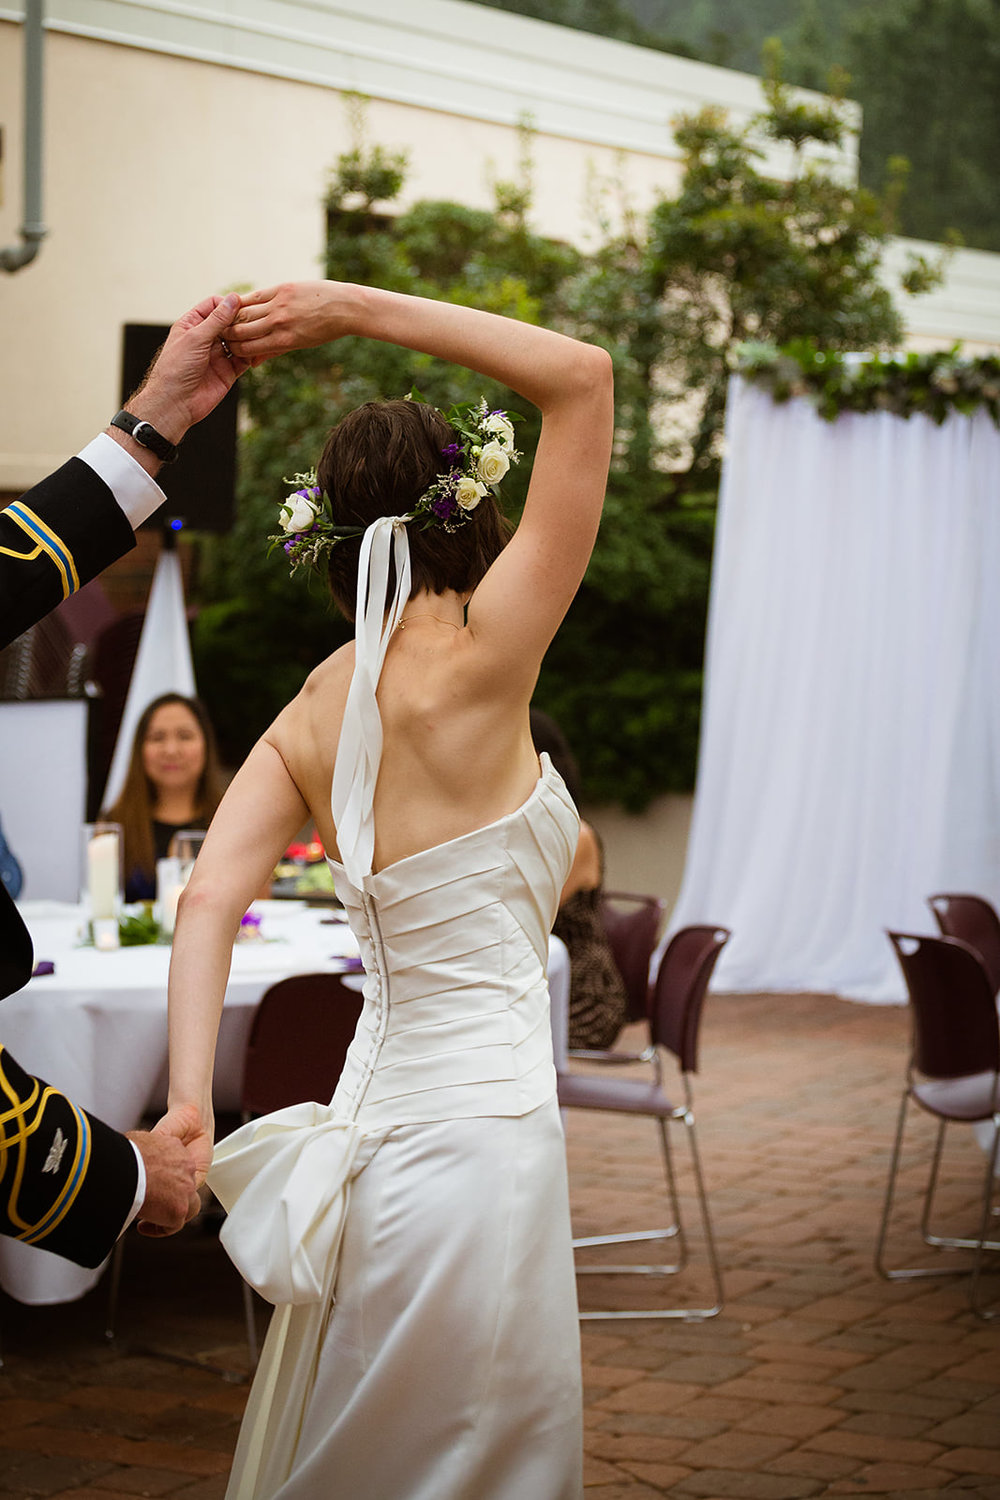 Blacano Wedding - Reception-33.jpg